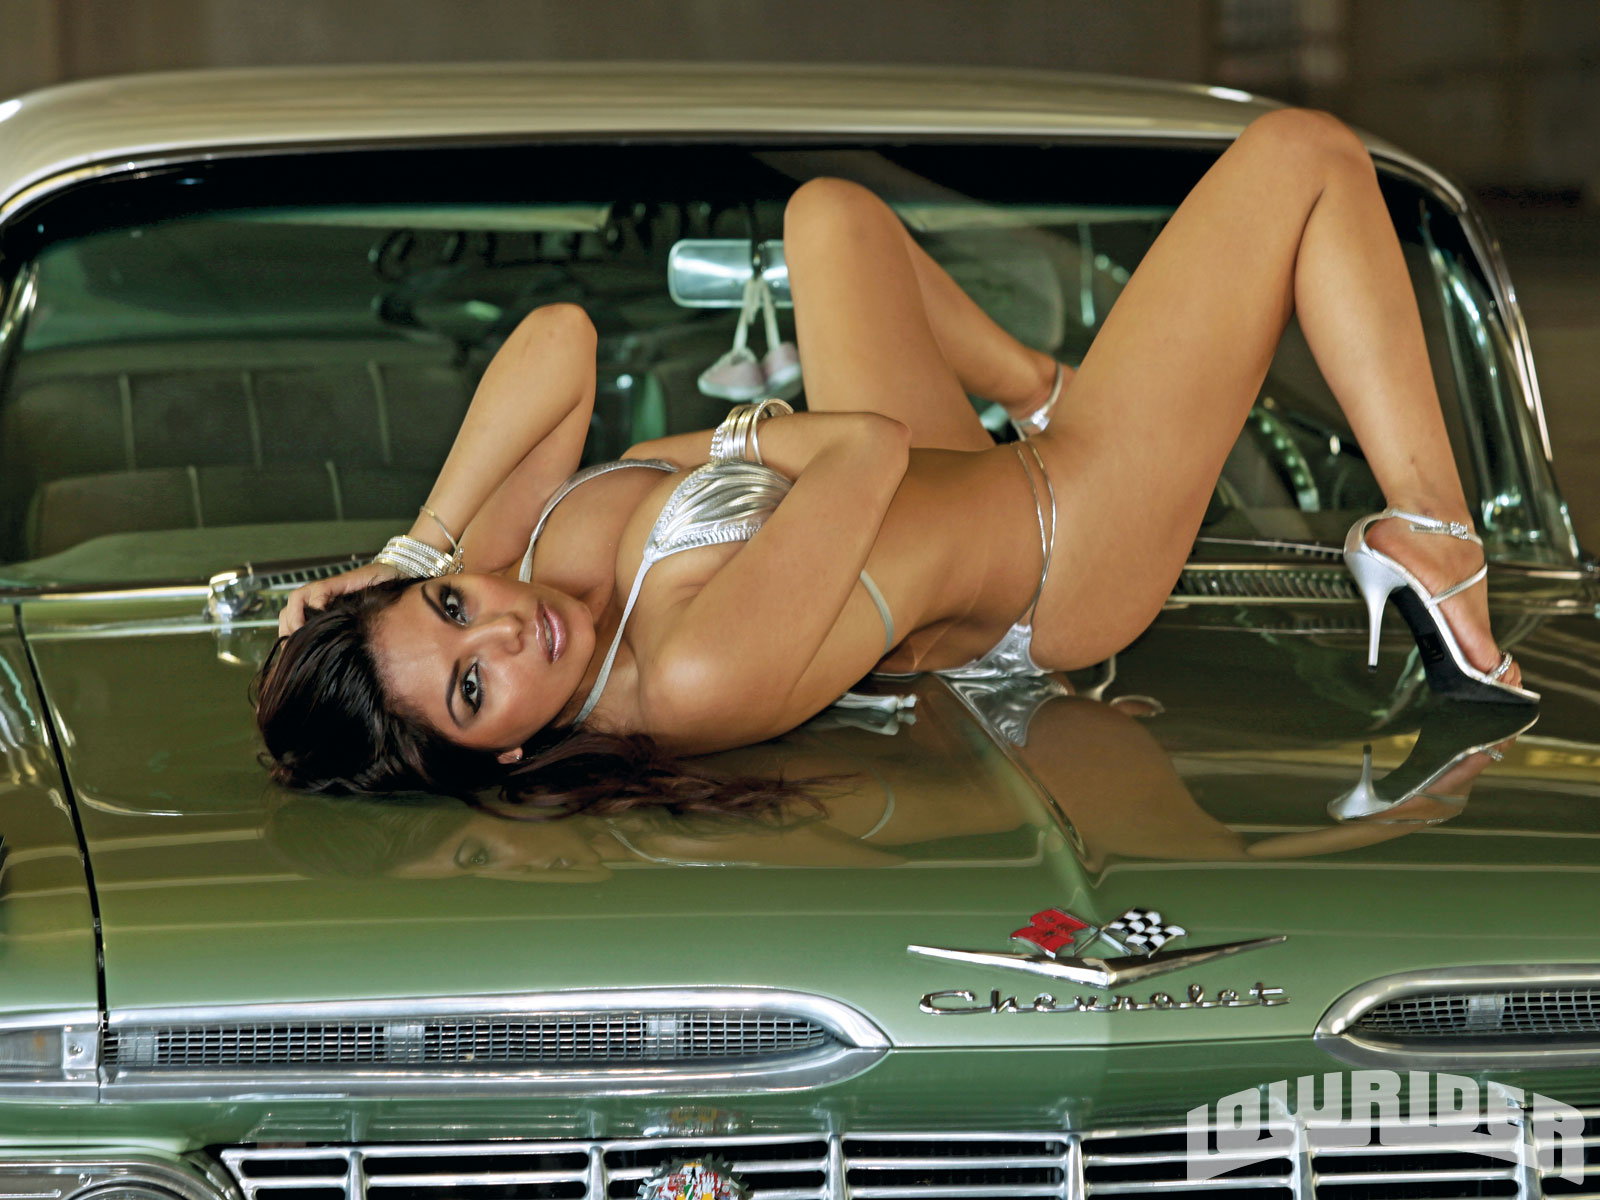 Download full size bonnet Ð¡hevrolet Girls & Cars wallpaper ...